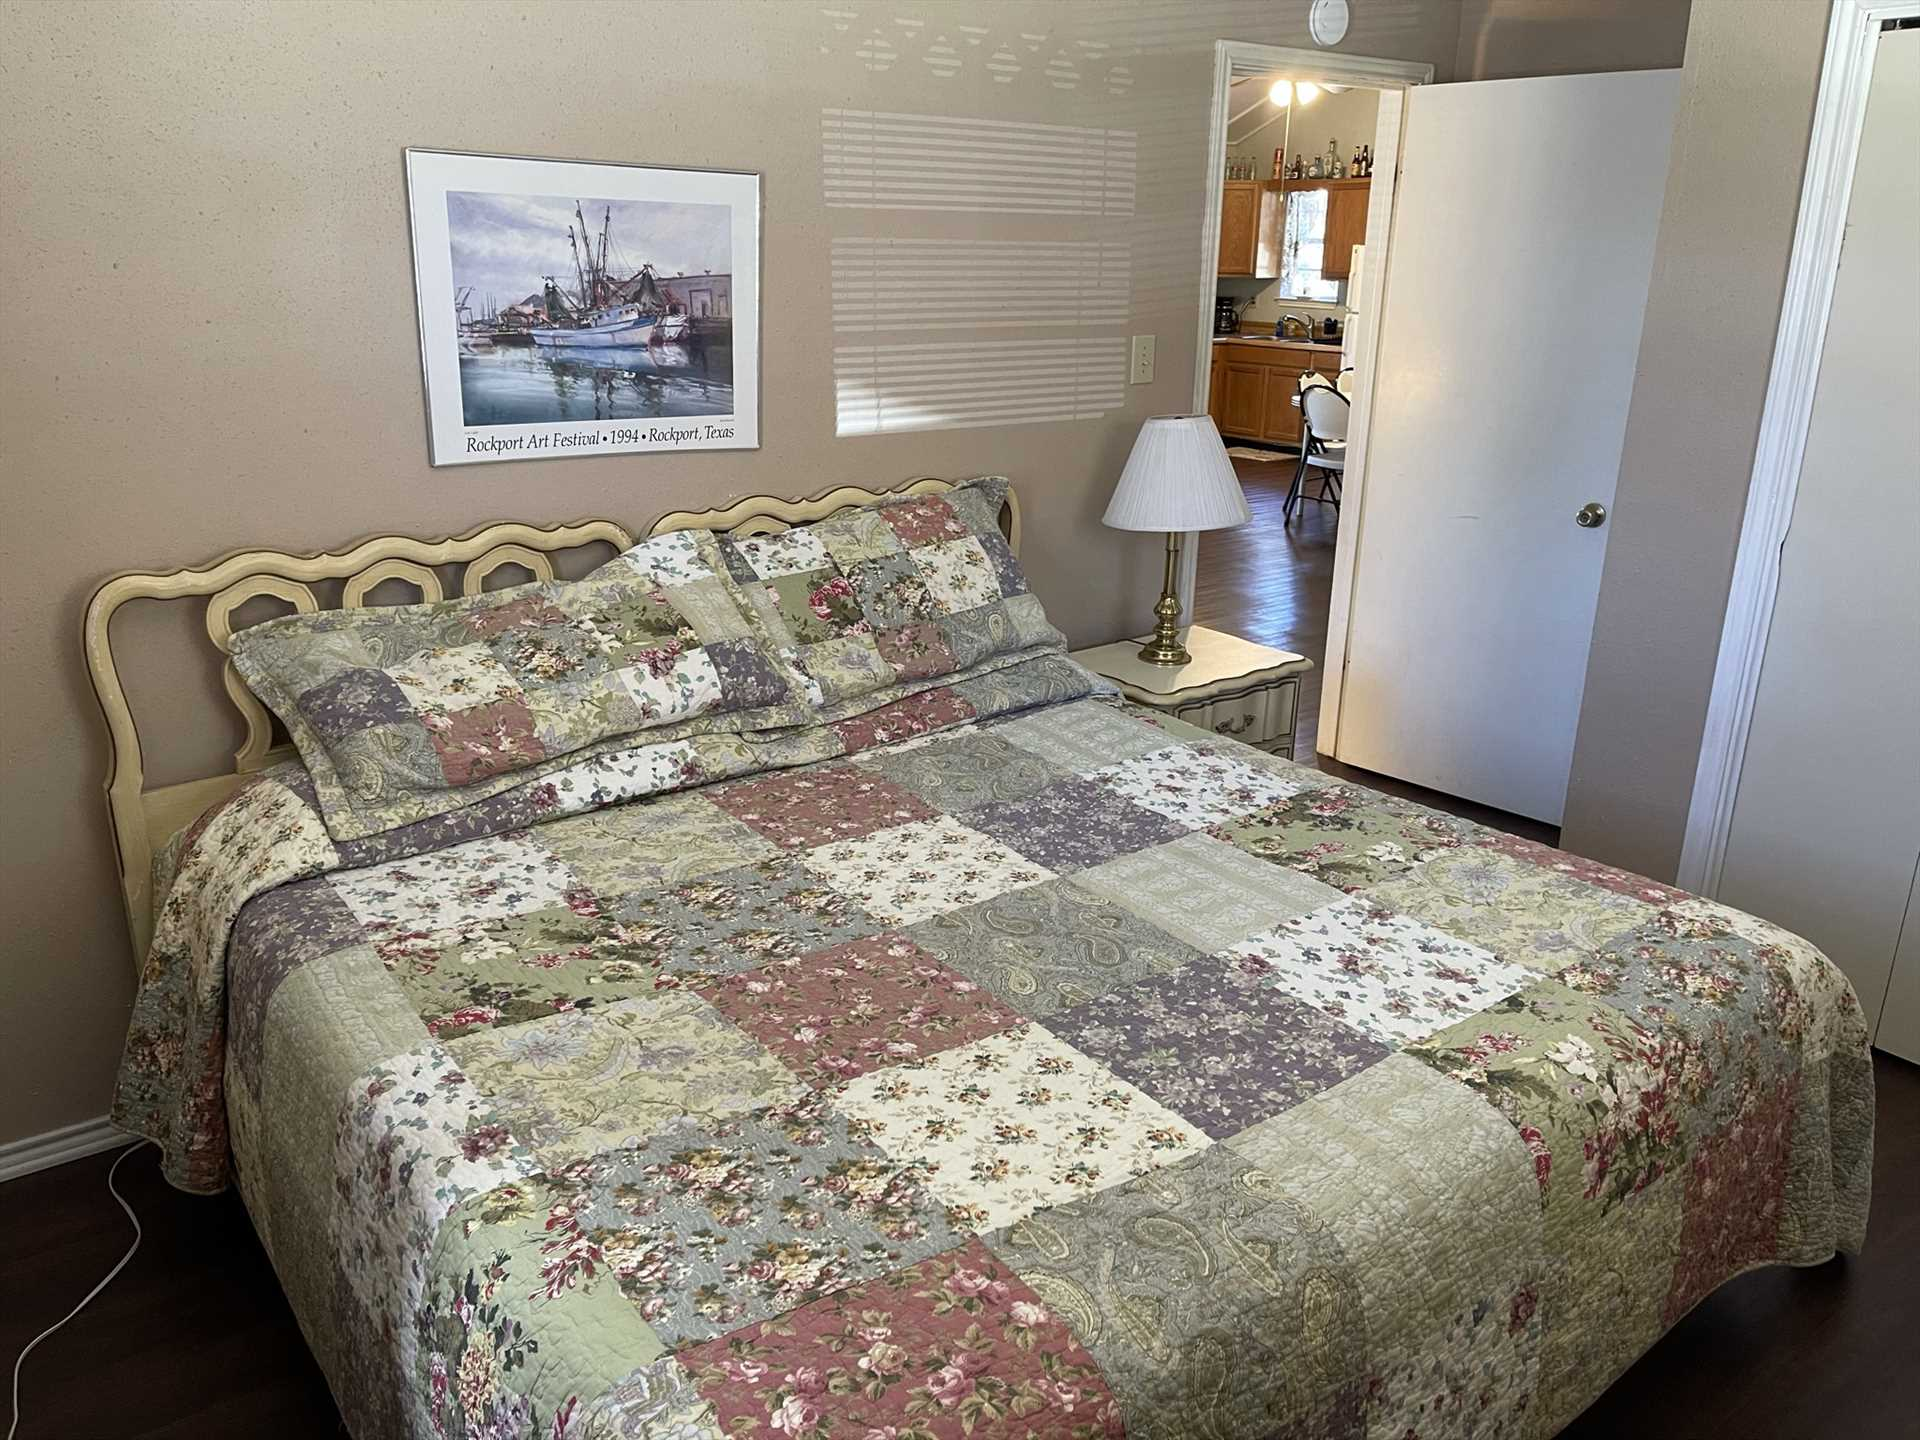 Two guests can sleep in luxurious comfort on the queen bed in the second bedroom. All told, there's soft and warm accommodations for up to four at Lambert Park.